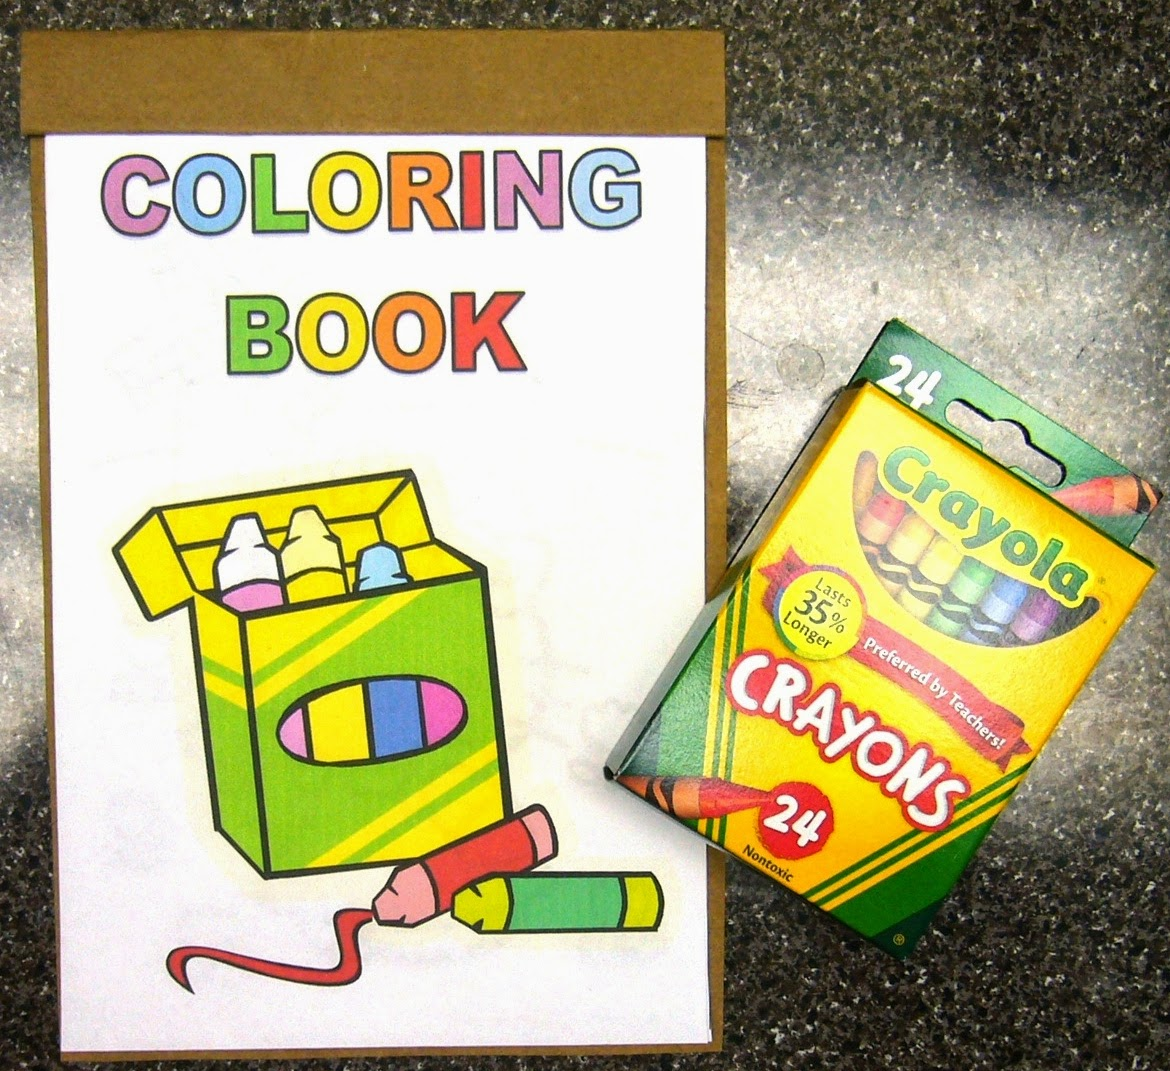 CRAYONS KIT WITH A COLORING BOOK